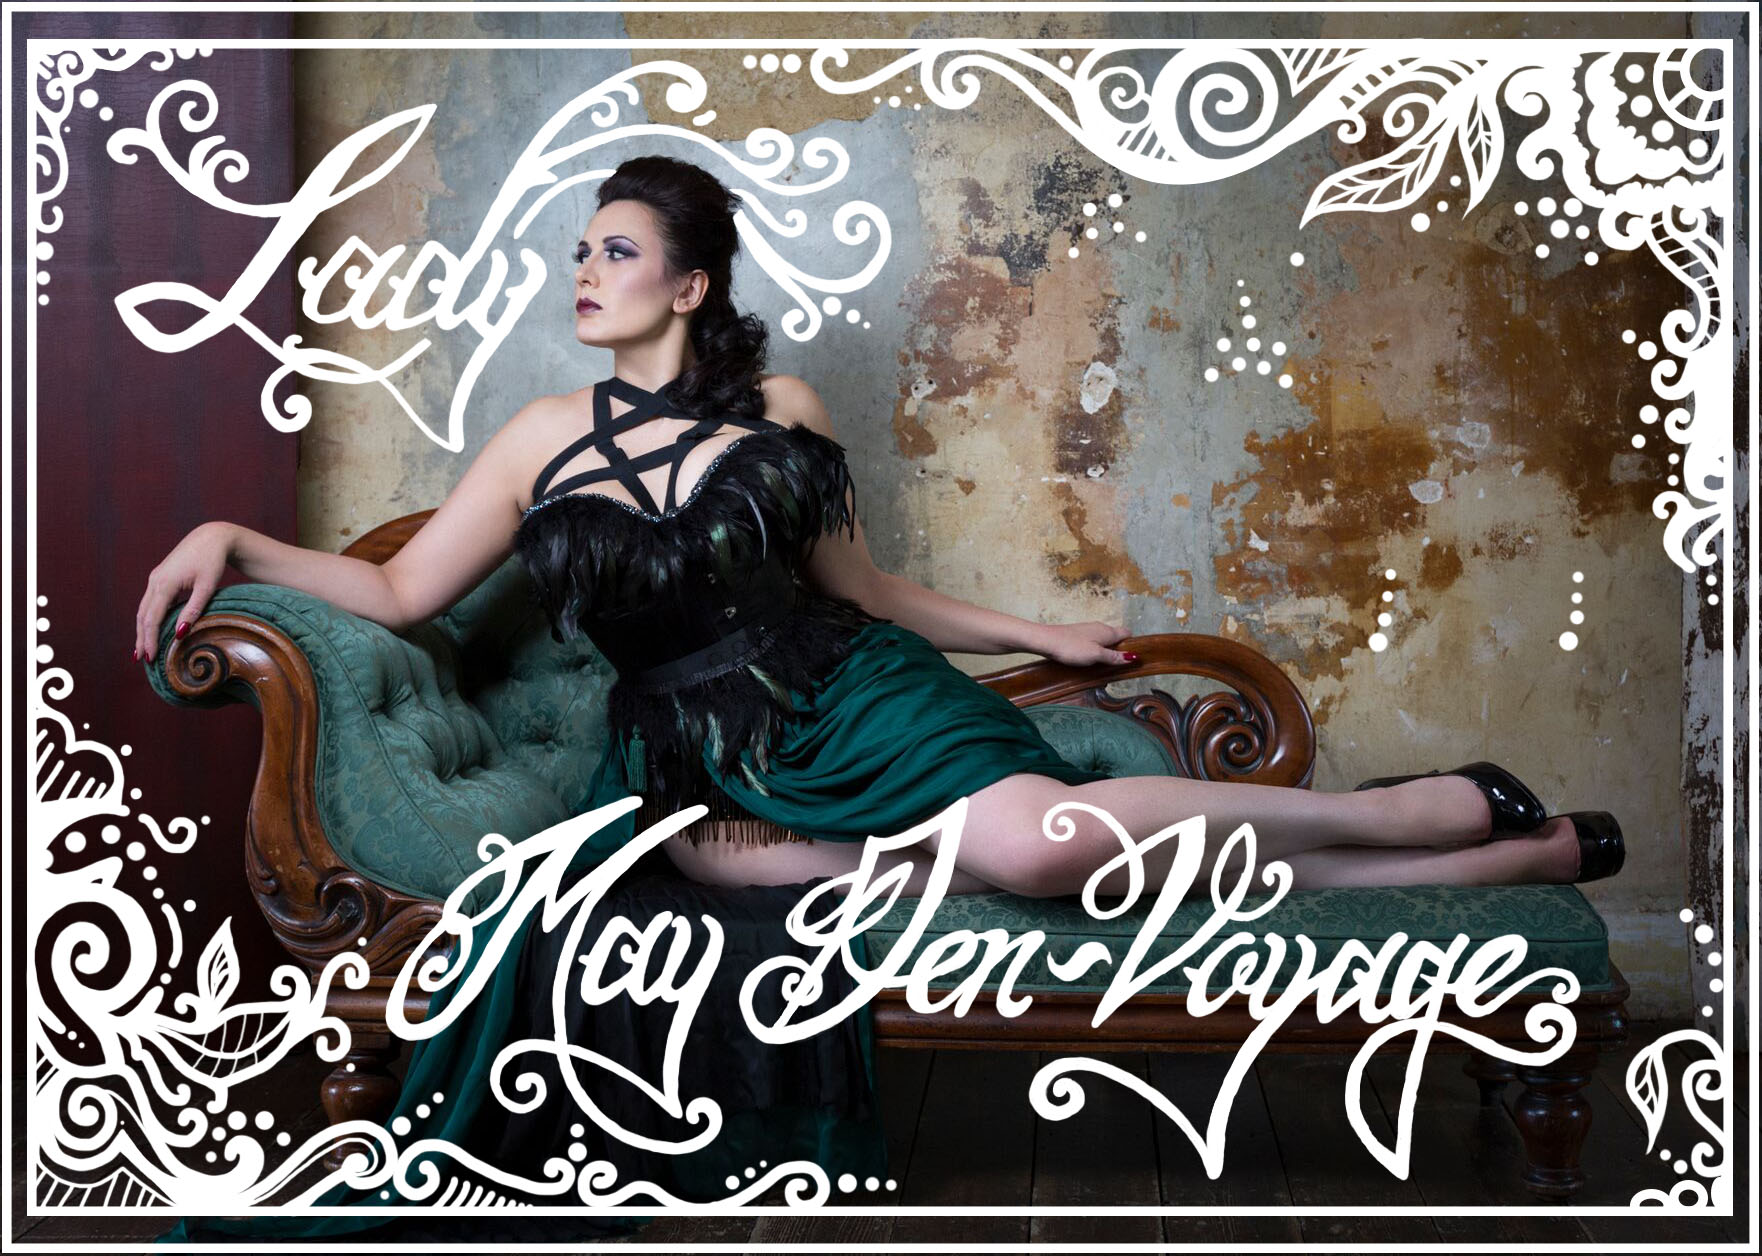 lady-may-voodoo-voyage-logo